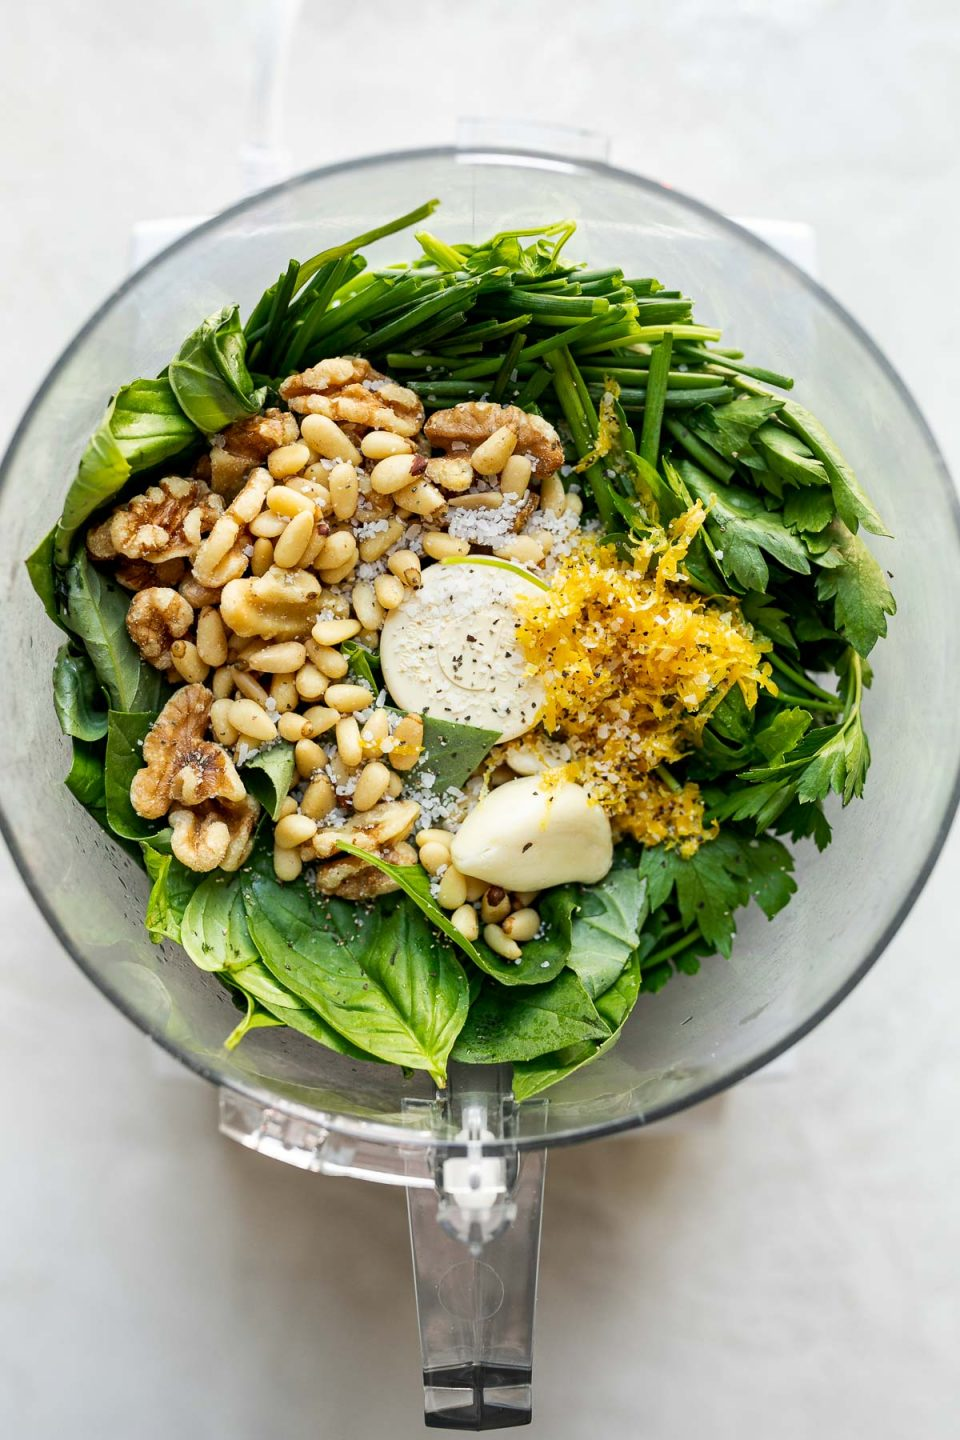 Green goddess pesto ingredients arranged in a food processor – basil leaves, parsley leaves, chives, lemon zest & juice, garlic, walnuts, pine nuts, extra virgin olive oil, & kosher salt. The food processor carafe sits atop a white surface.